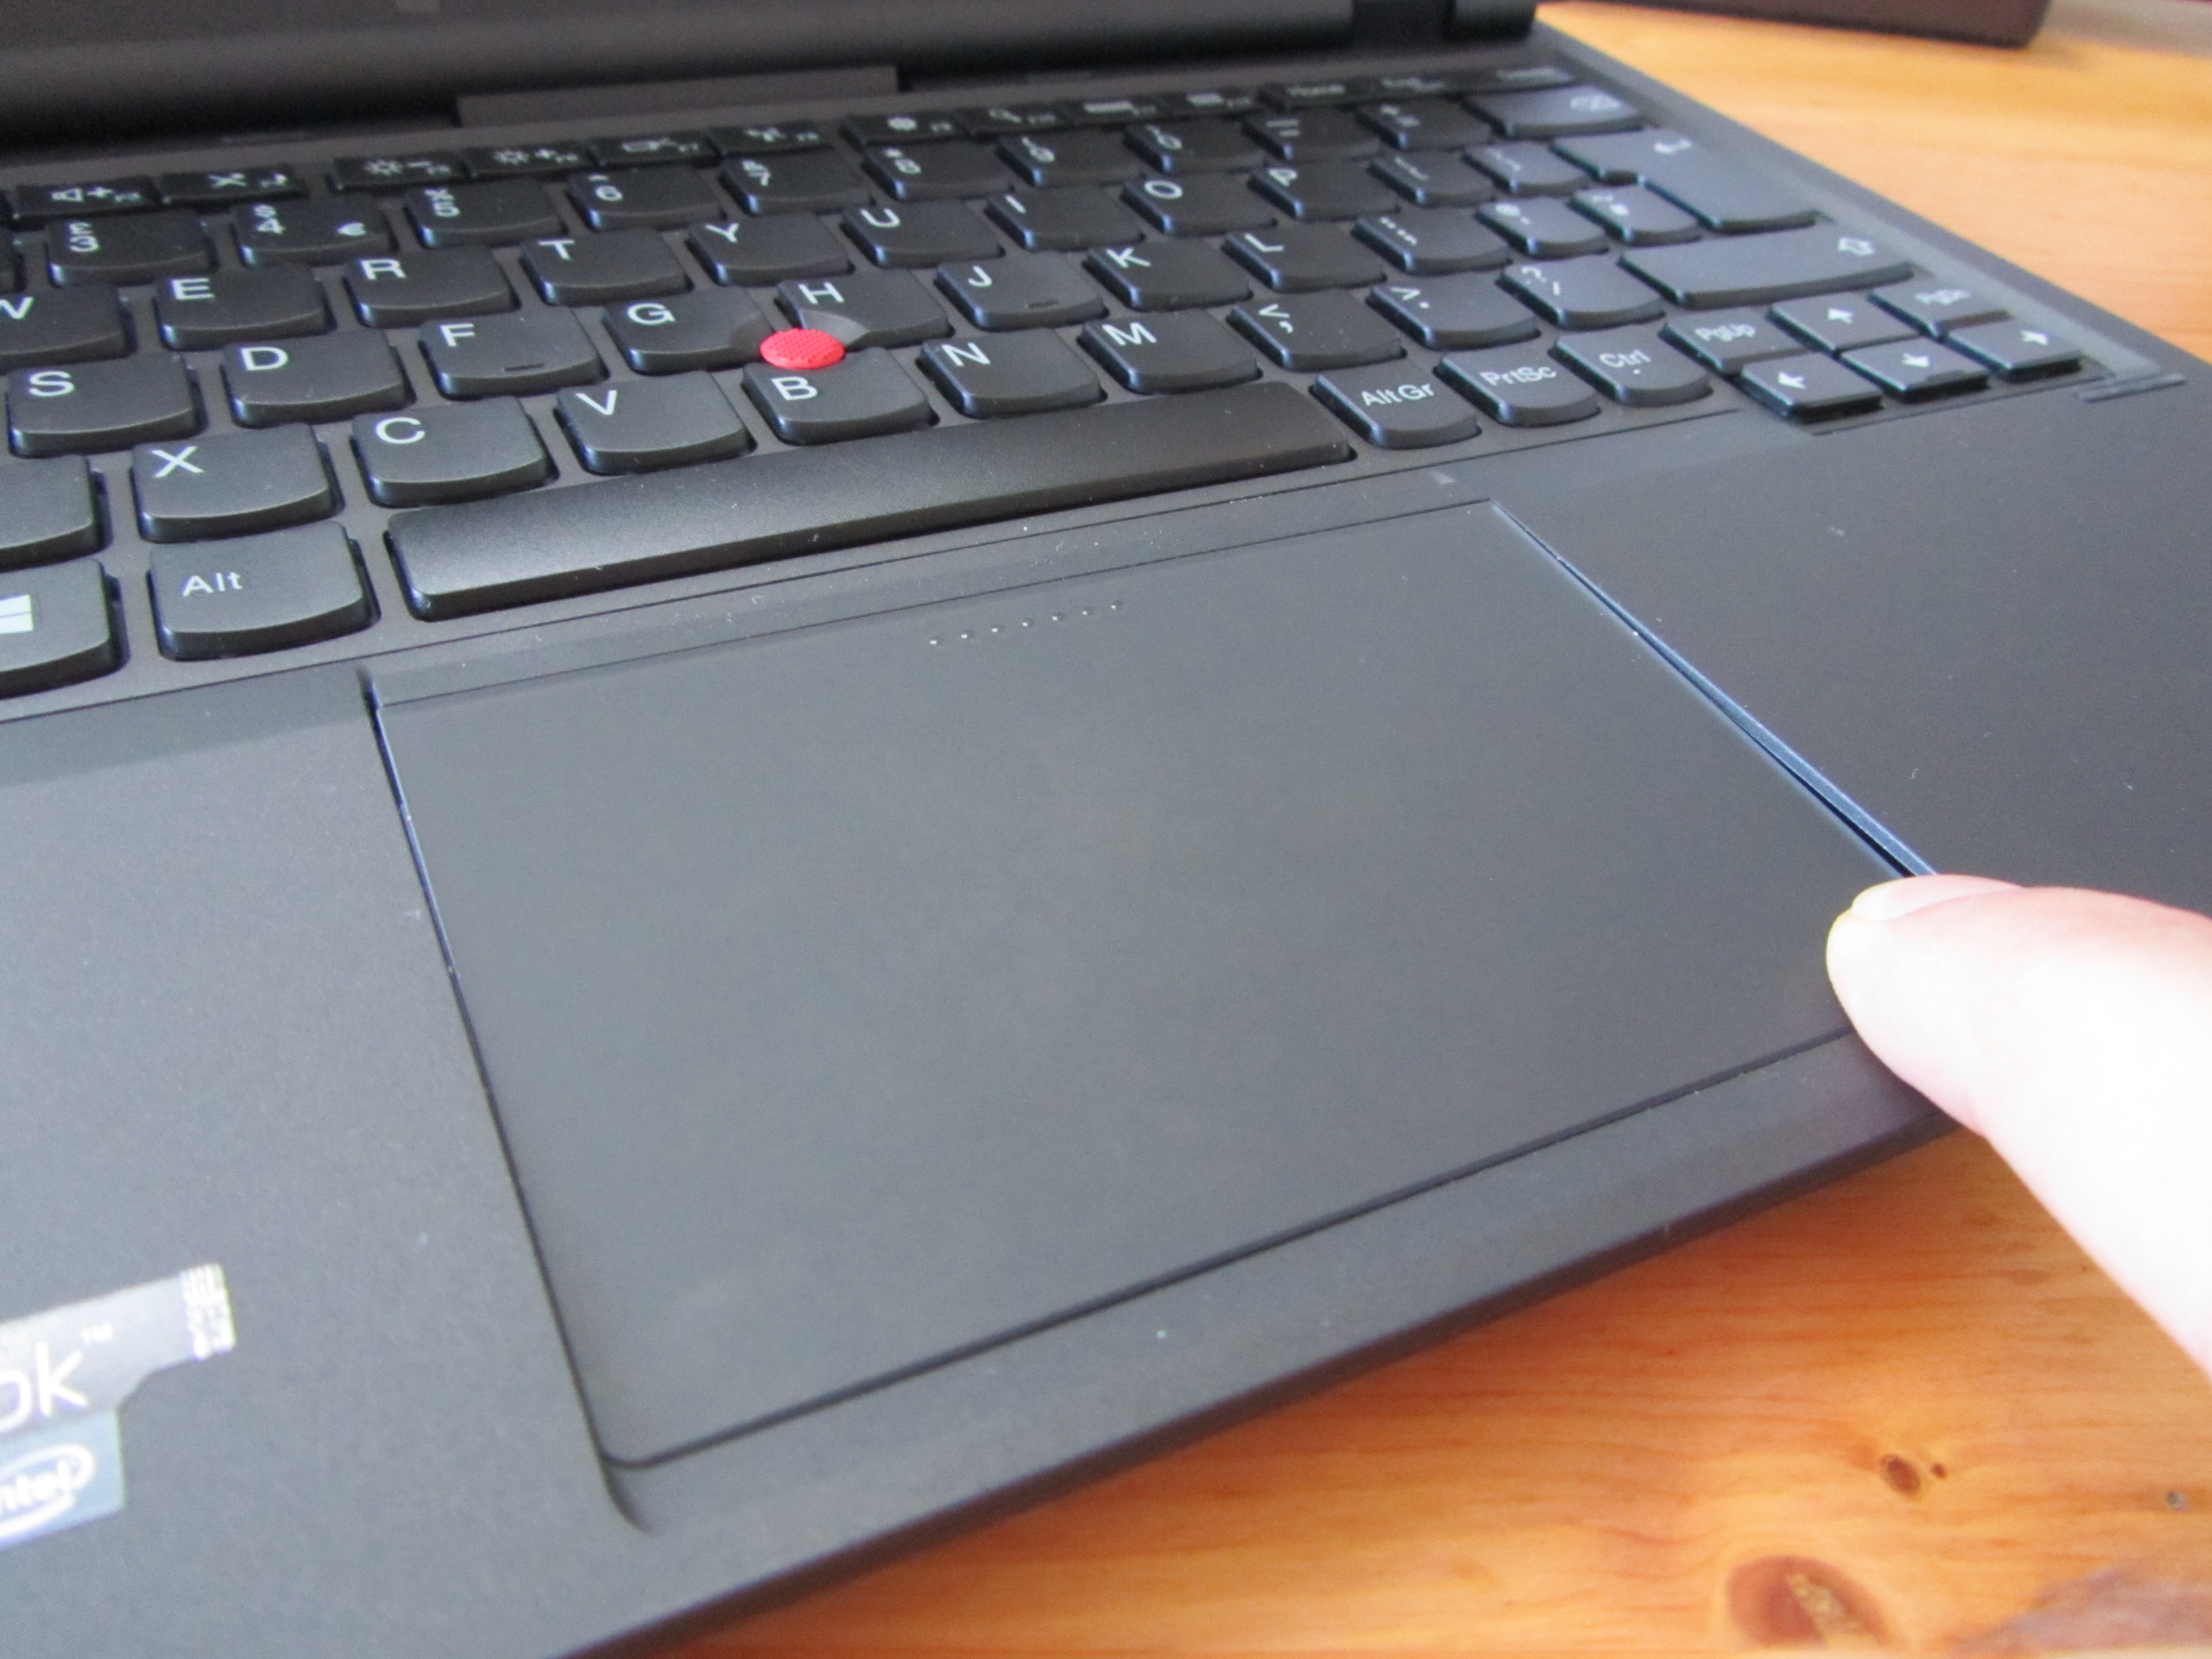 Helix trackpad Lenovos ThinkPad Helix: Nice specs, but its price and weight show whats wrong with hybrid PCs